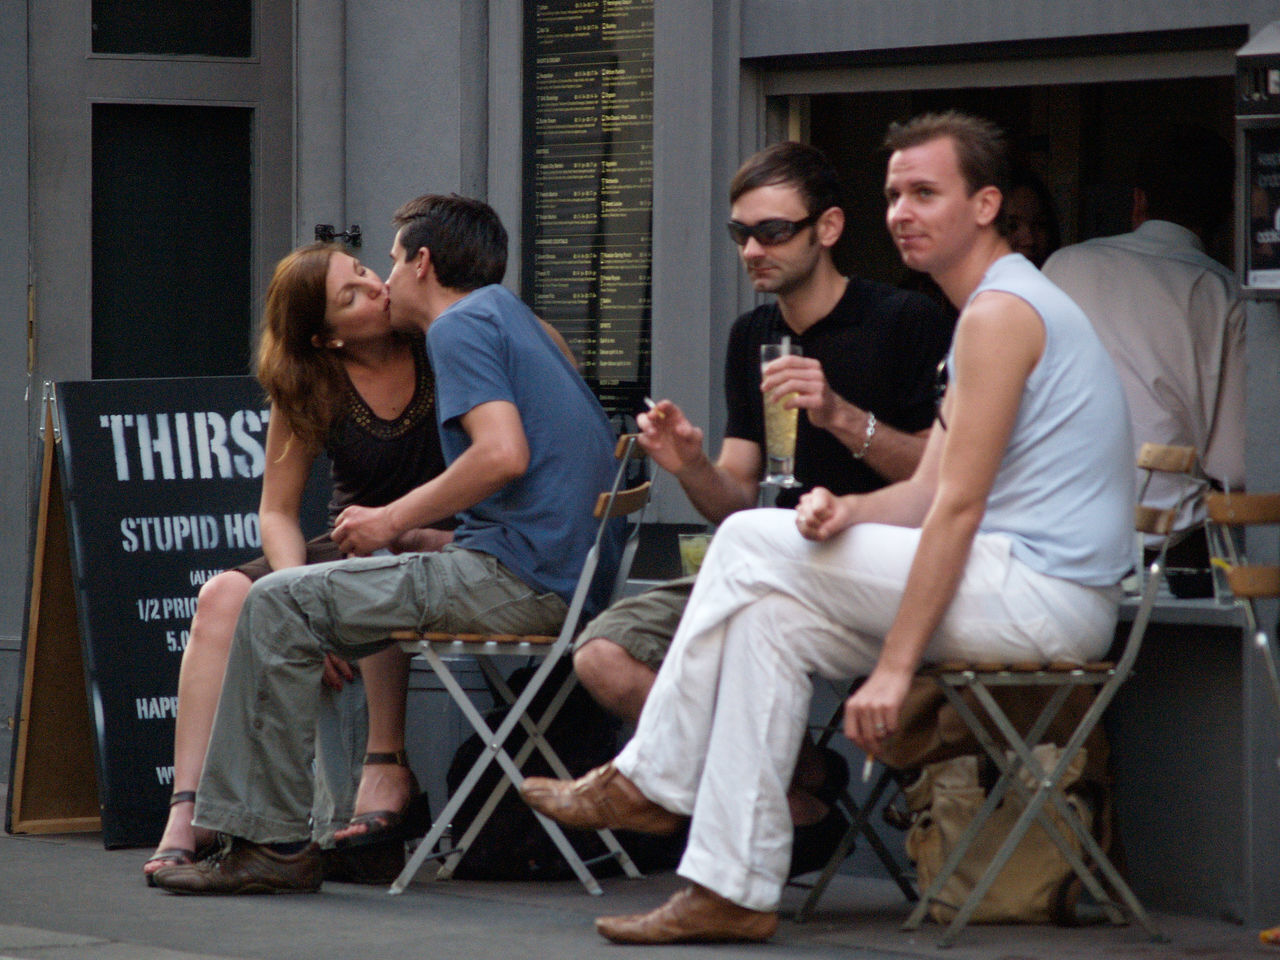 sitting, young men, young adult, togetherness, men, group of people, young women, friendship, day, outdoors, people, adult